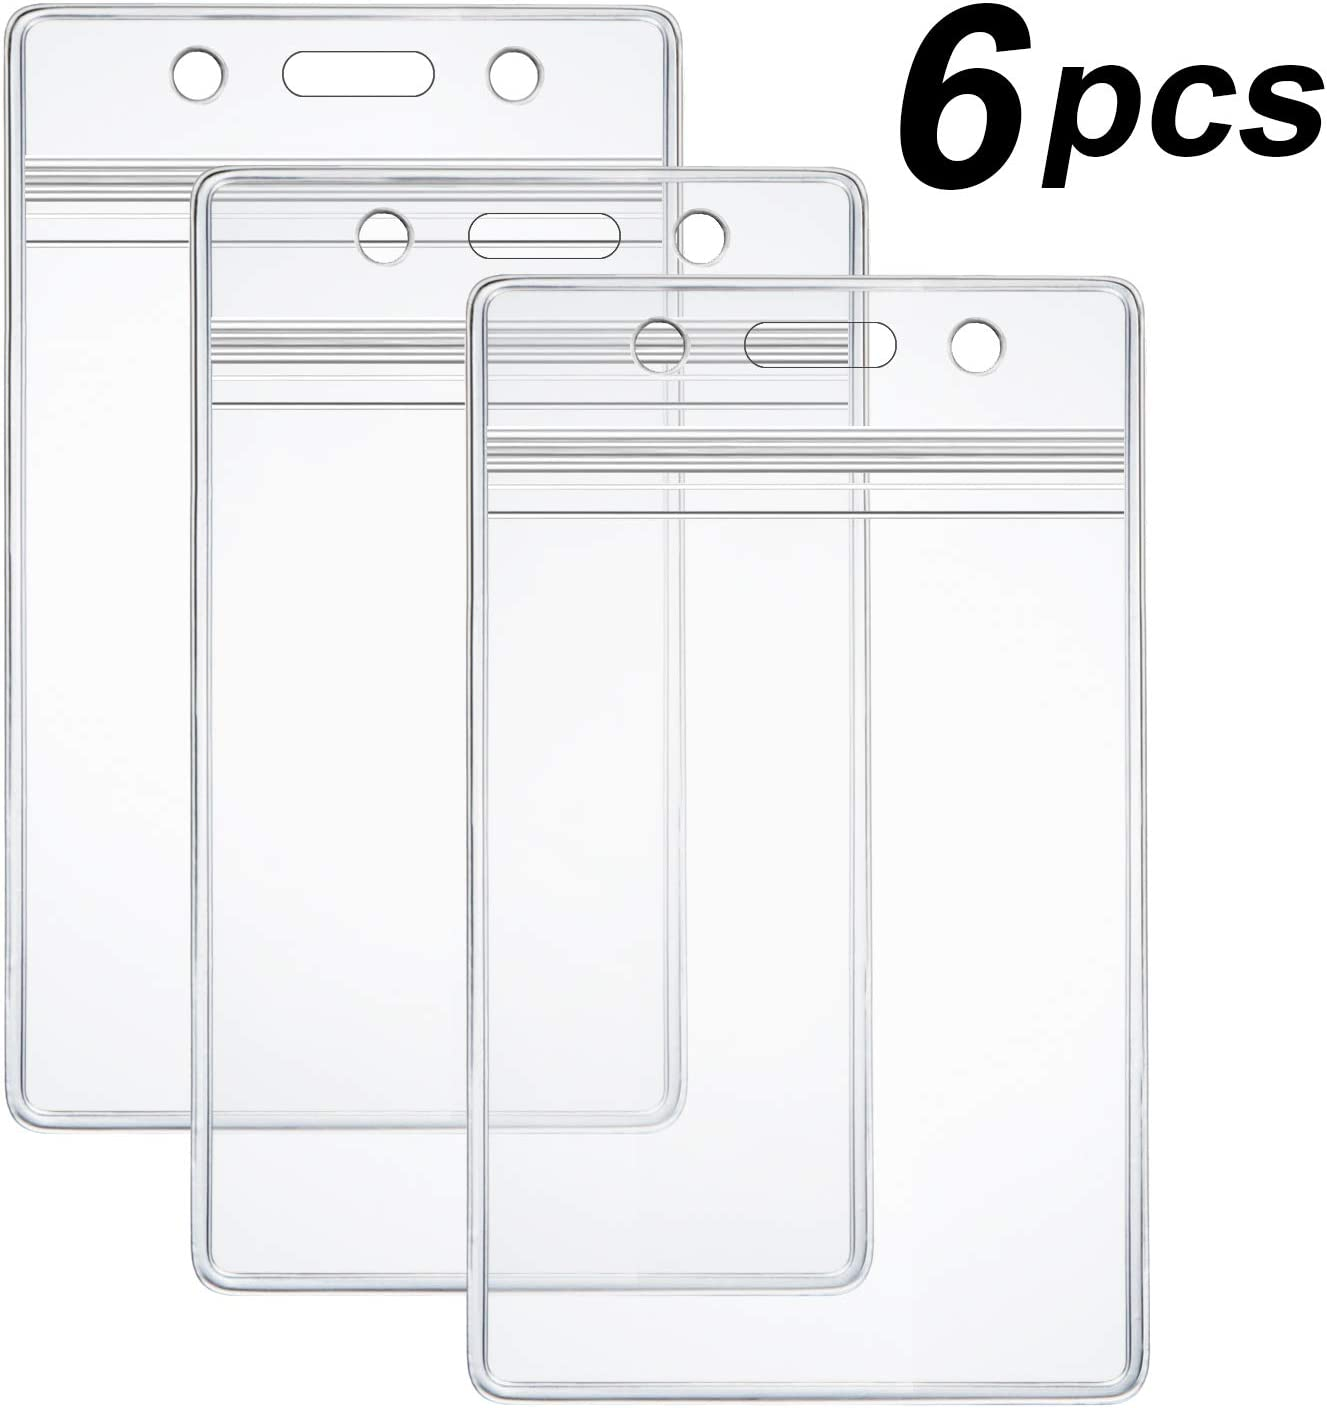 6 Pcs Extra Thick ID Card Badge Holder, Vertical Clear PVC Card Holder with Waterproof Resealable Zip Type